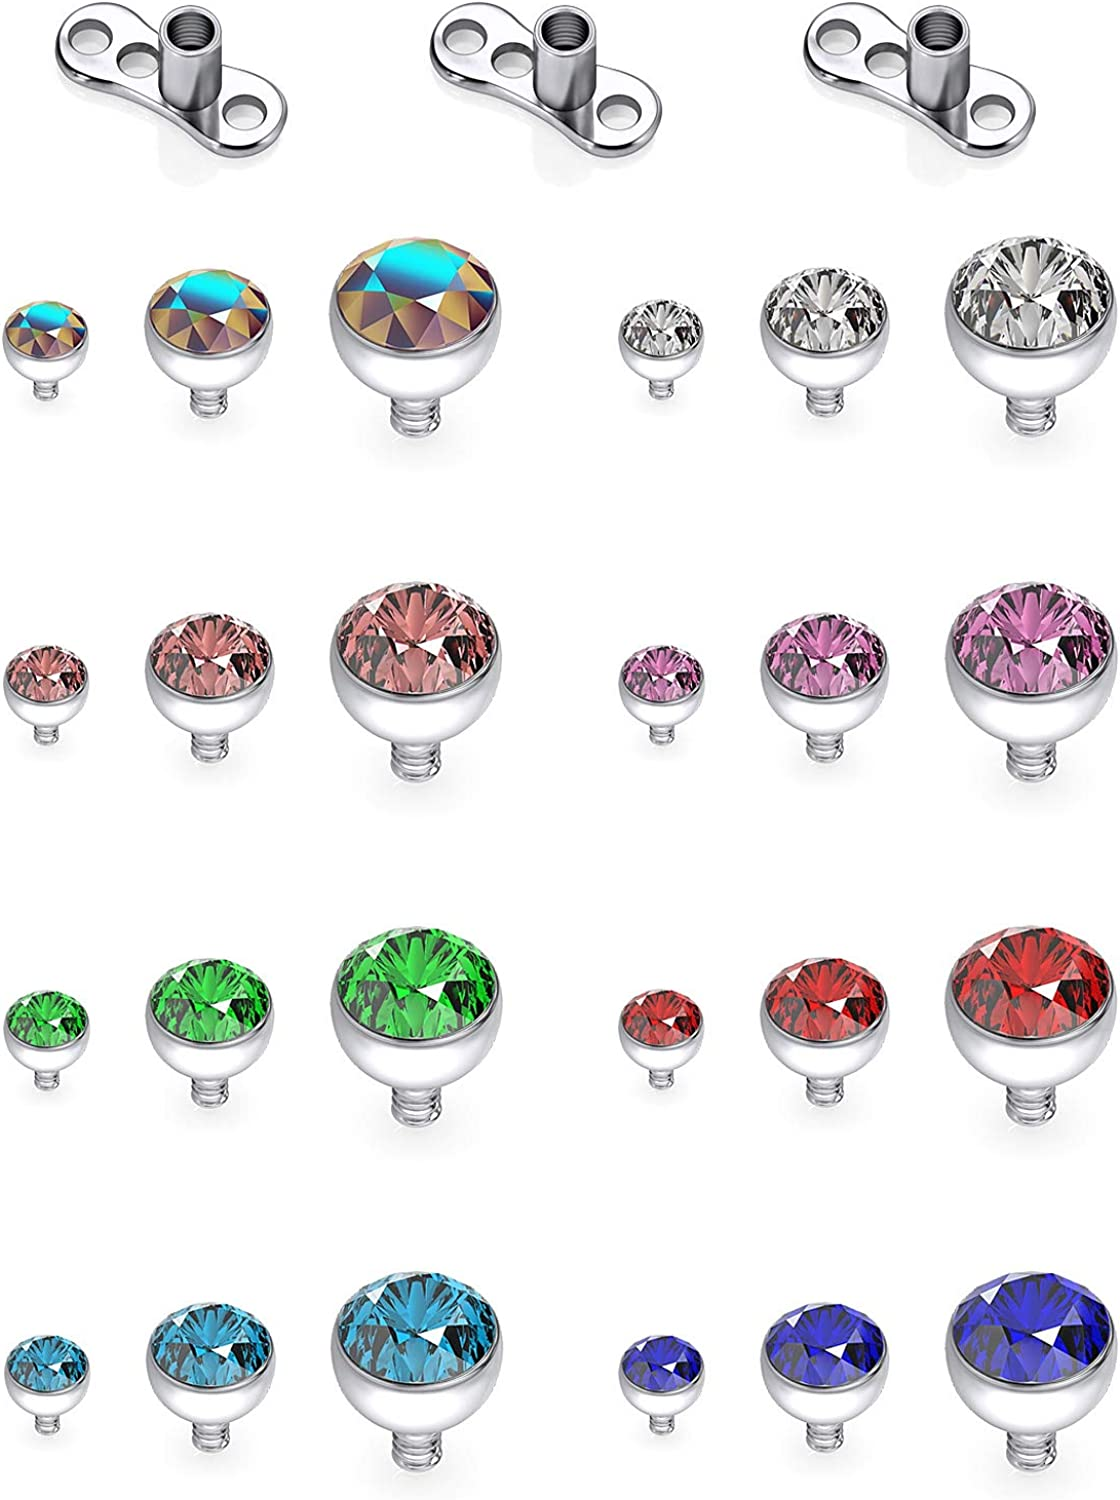 Outstanding SCERRING 14g Clear OFFicial CZ Dermal Anchor and Tops Titanium Base Micro